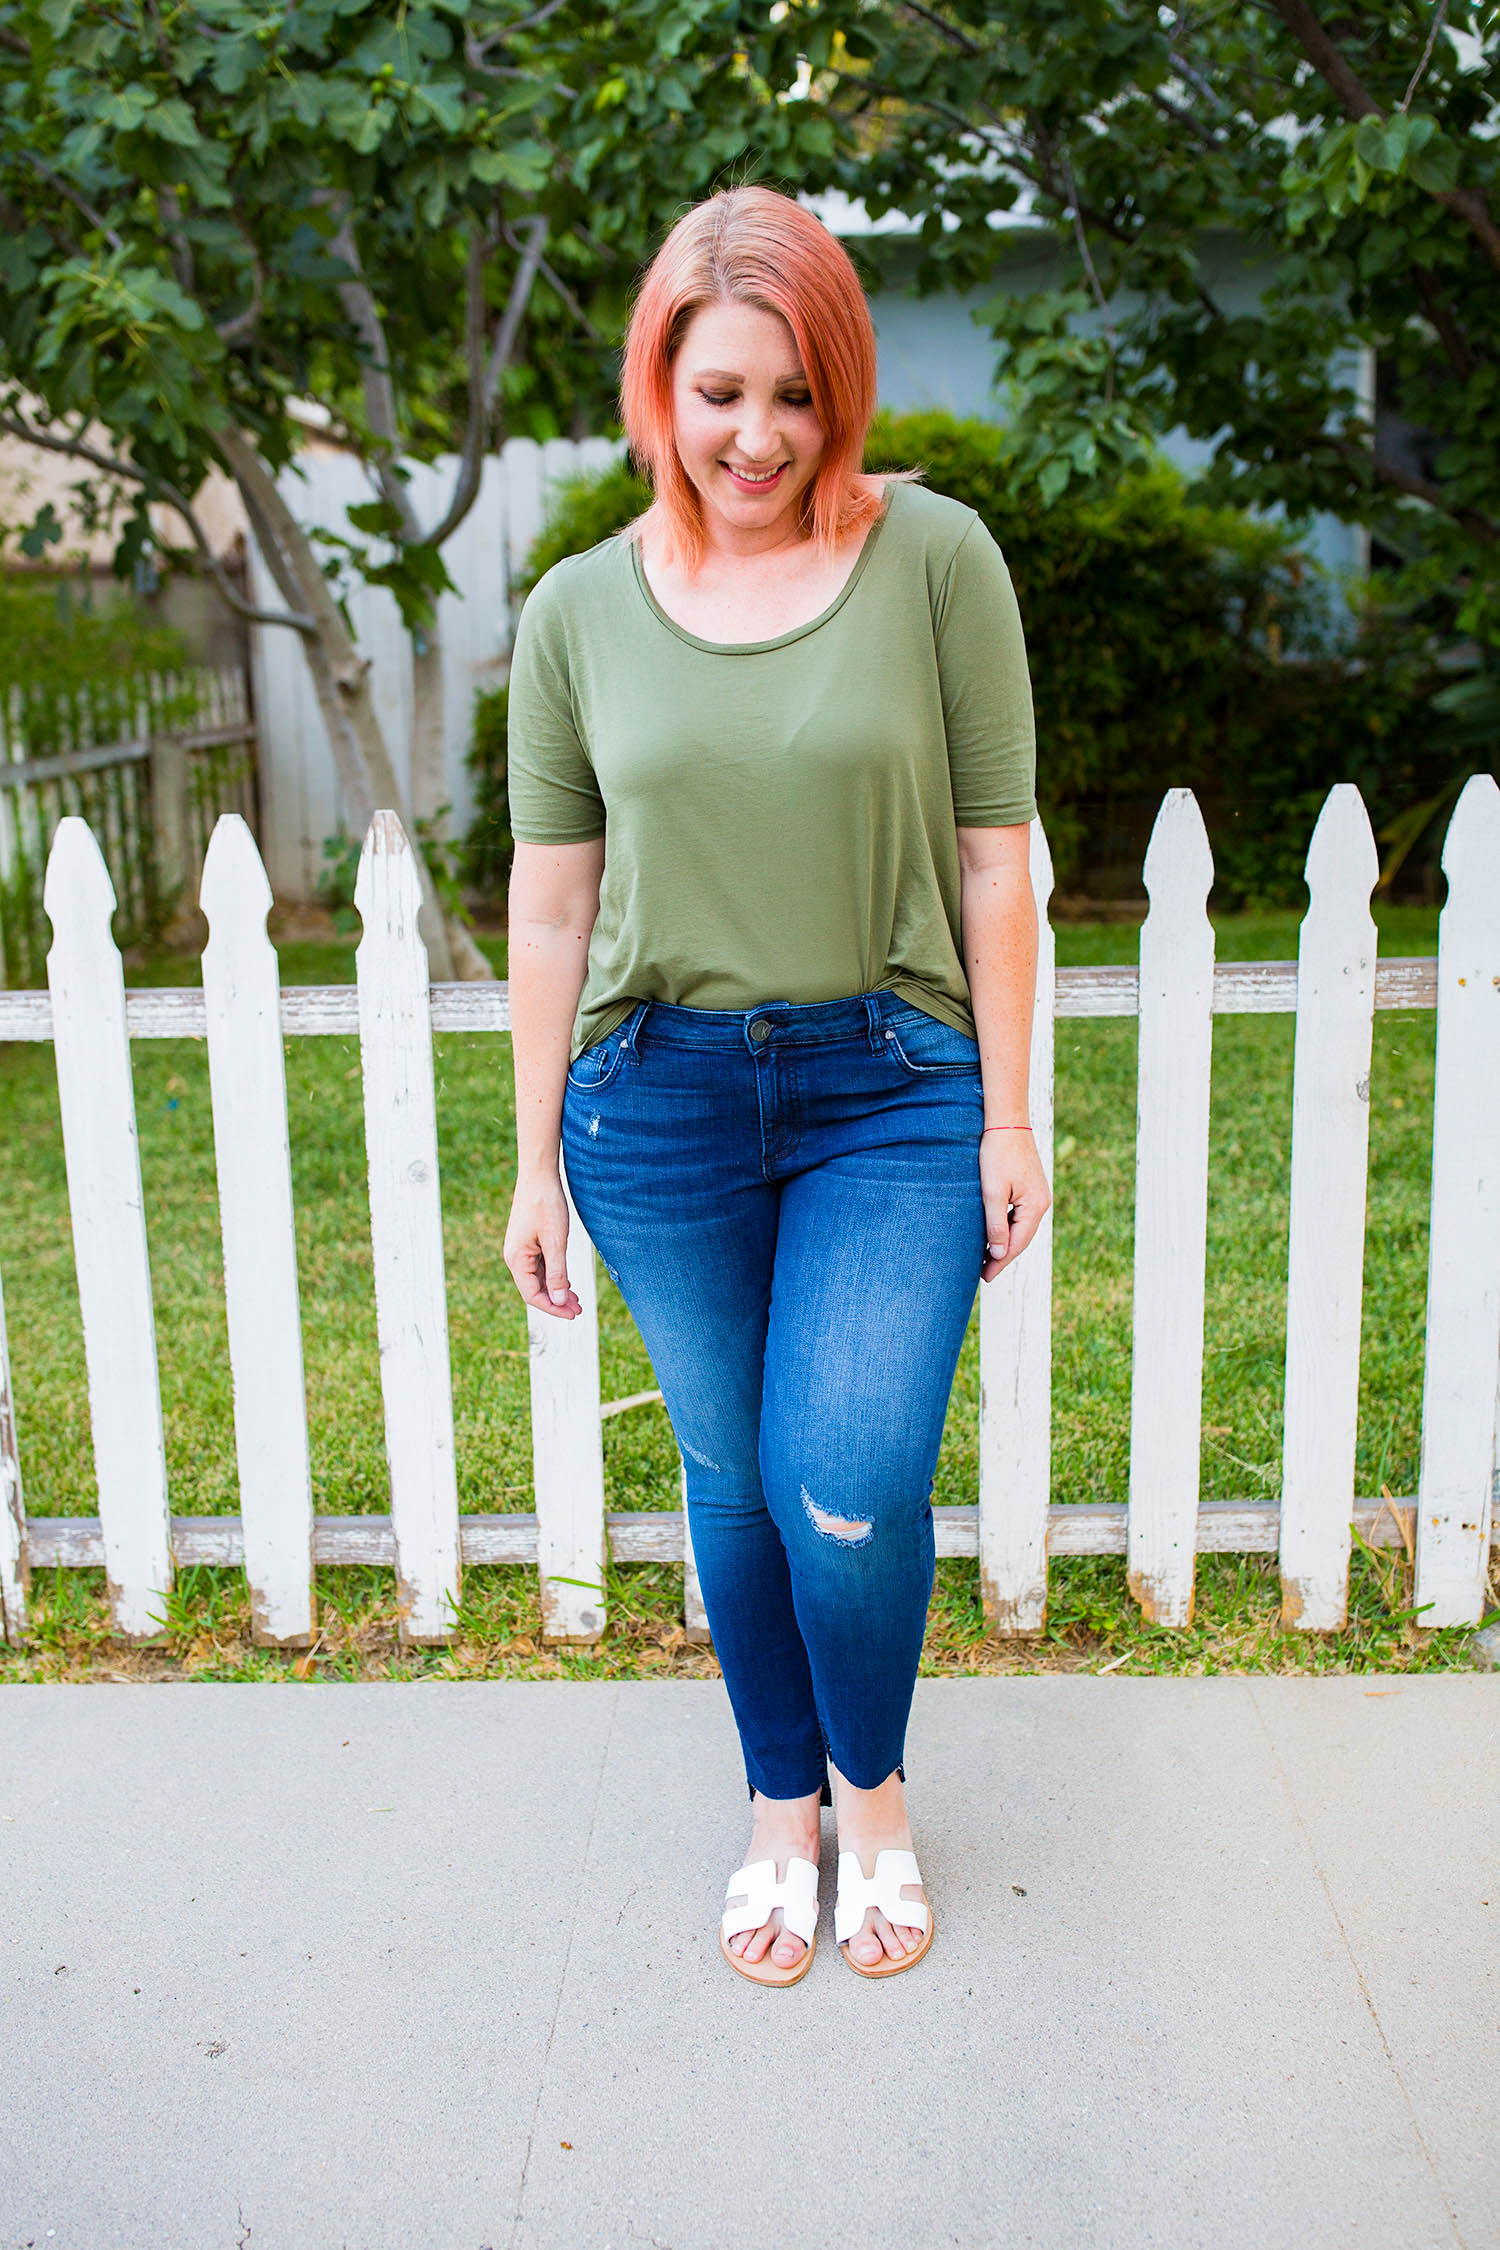 Nordstrom Anniversary Sale 2018: Fall outfits time is HERE, and these Kut from the Kloth frayed jeans are a GREAT price!